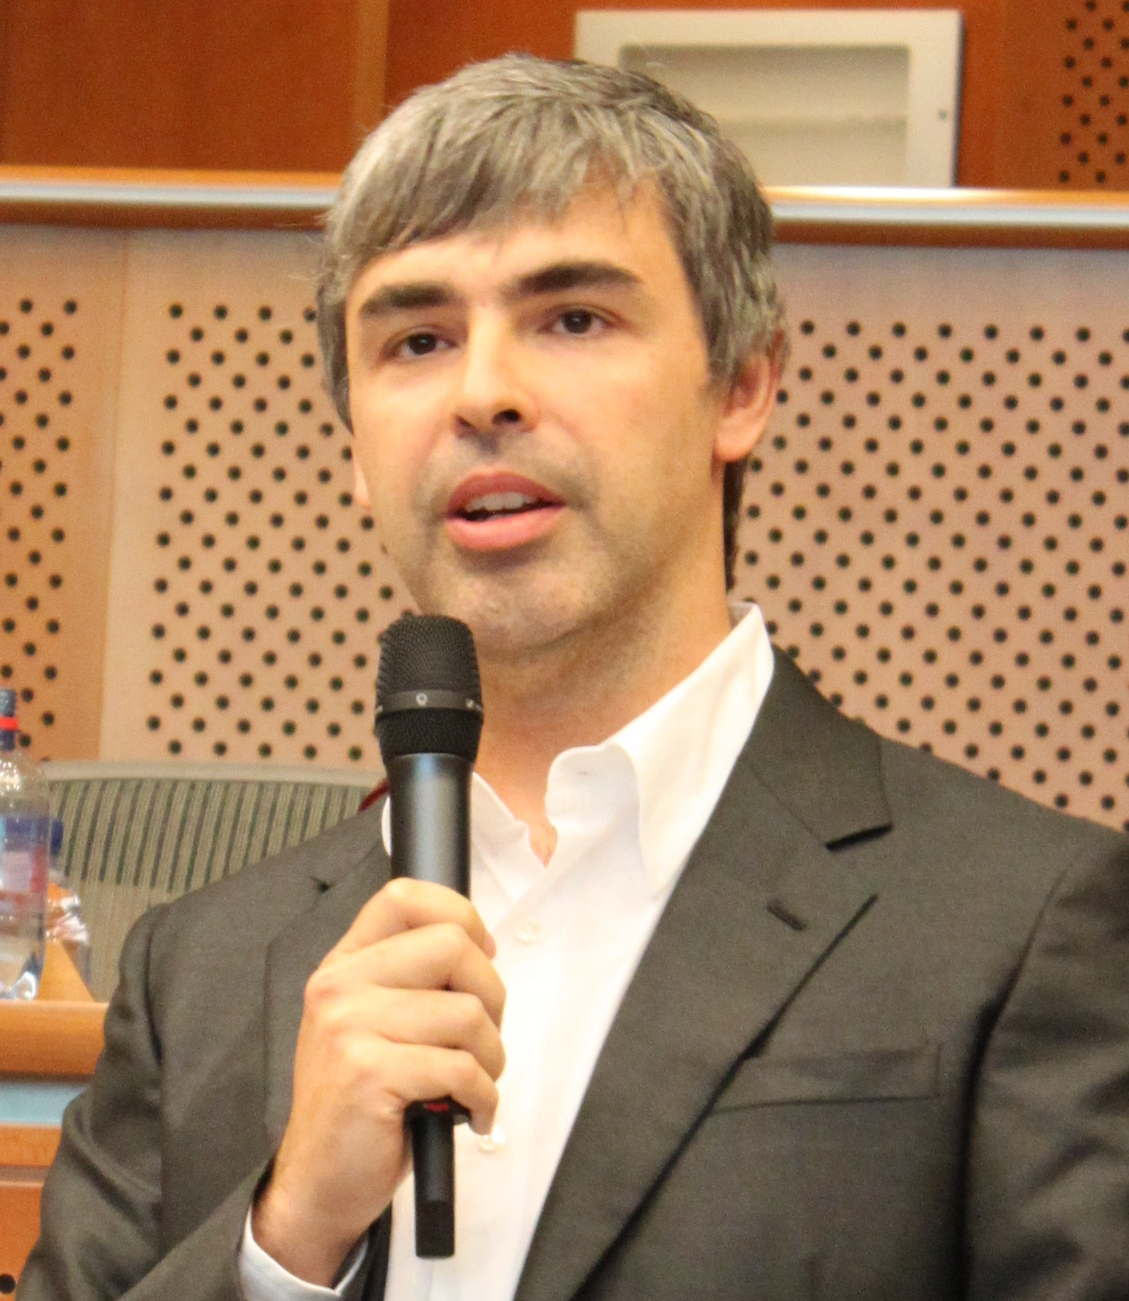 Alphabet CEO Larry Page